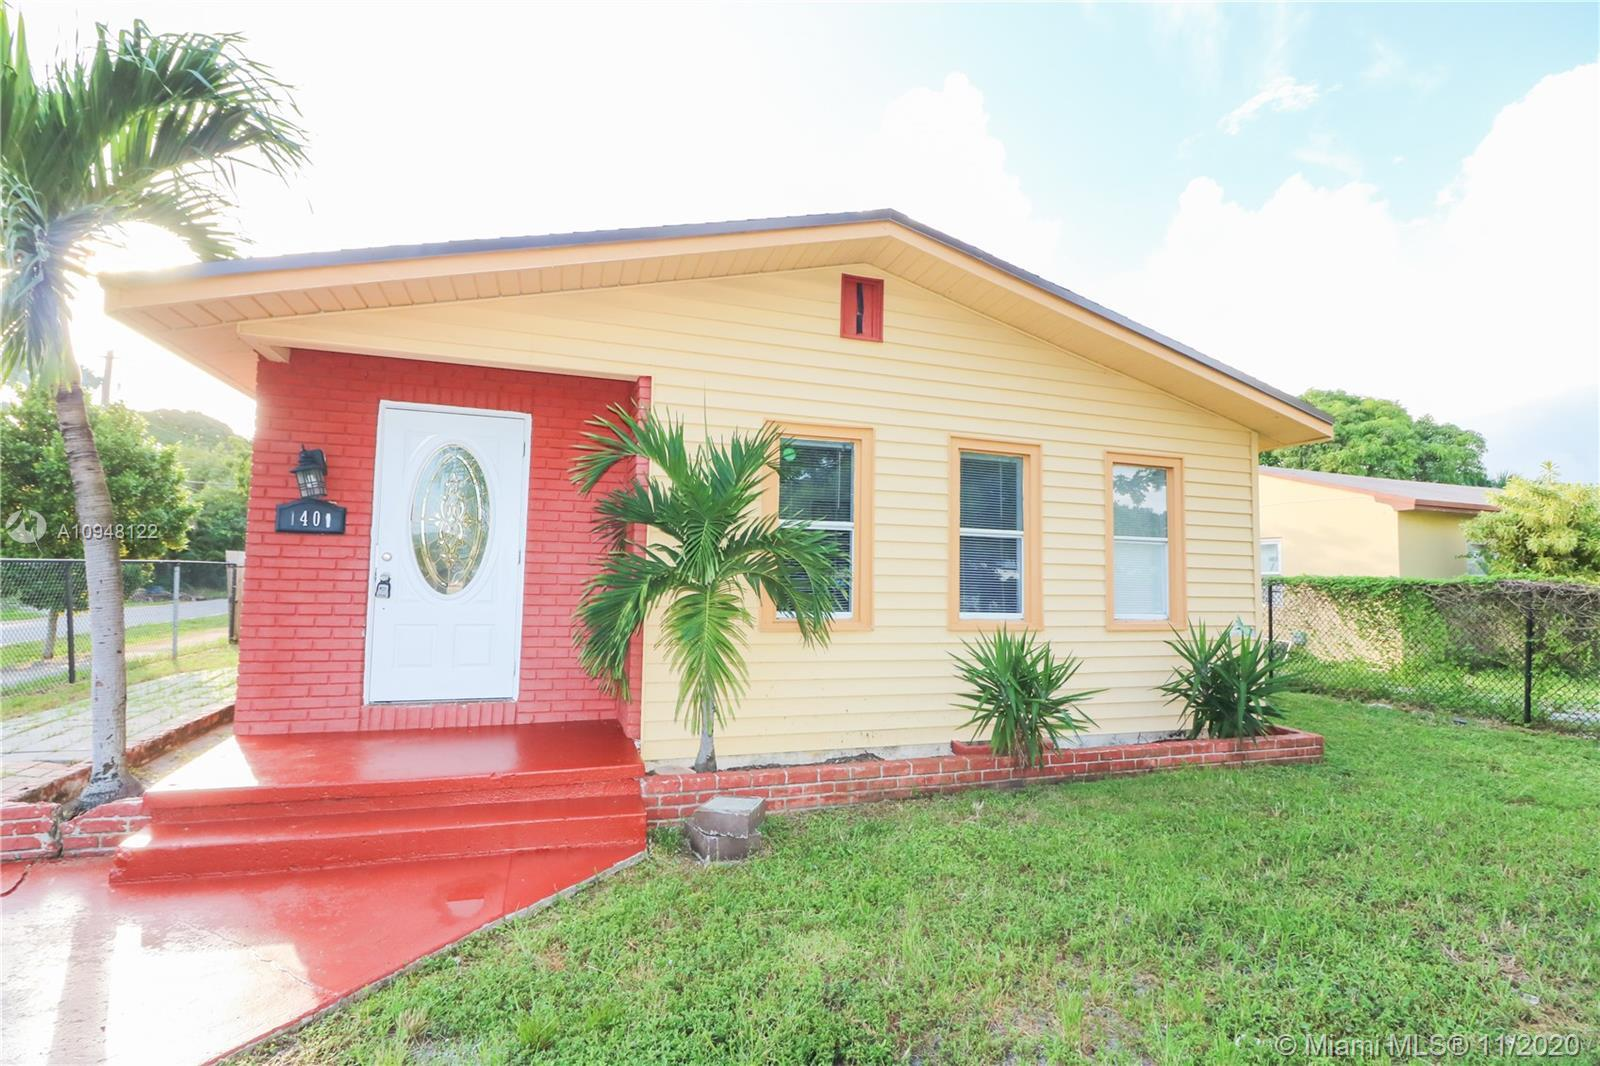 Fully Renovated 4 Bedroom 2 Bathroom House - GREAT OPPORTUNITY - Well Located just North of Sunrise